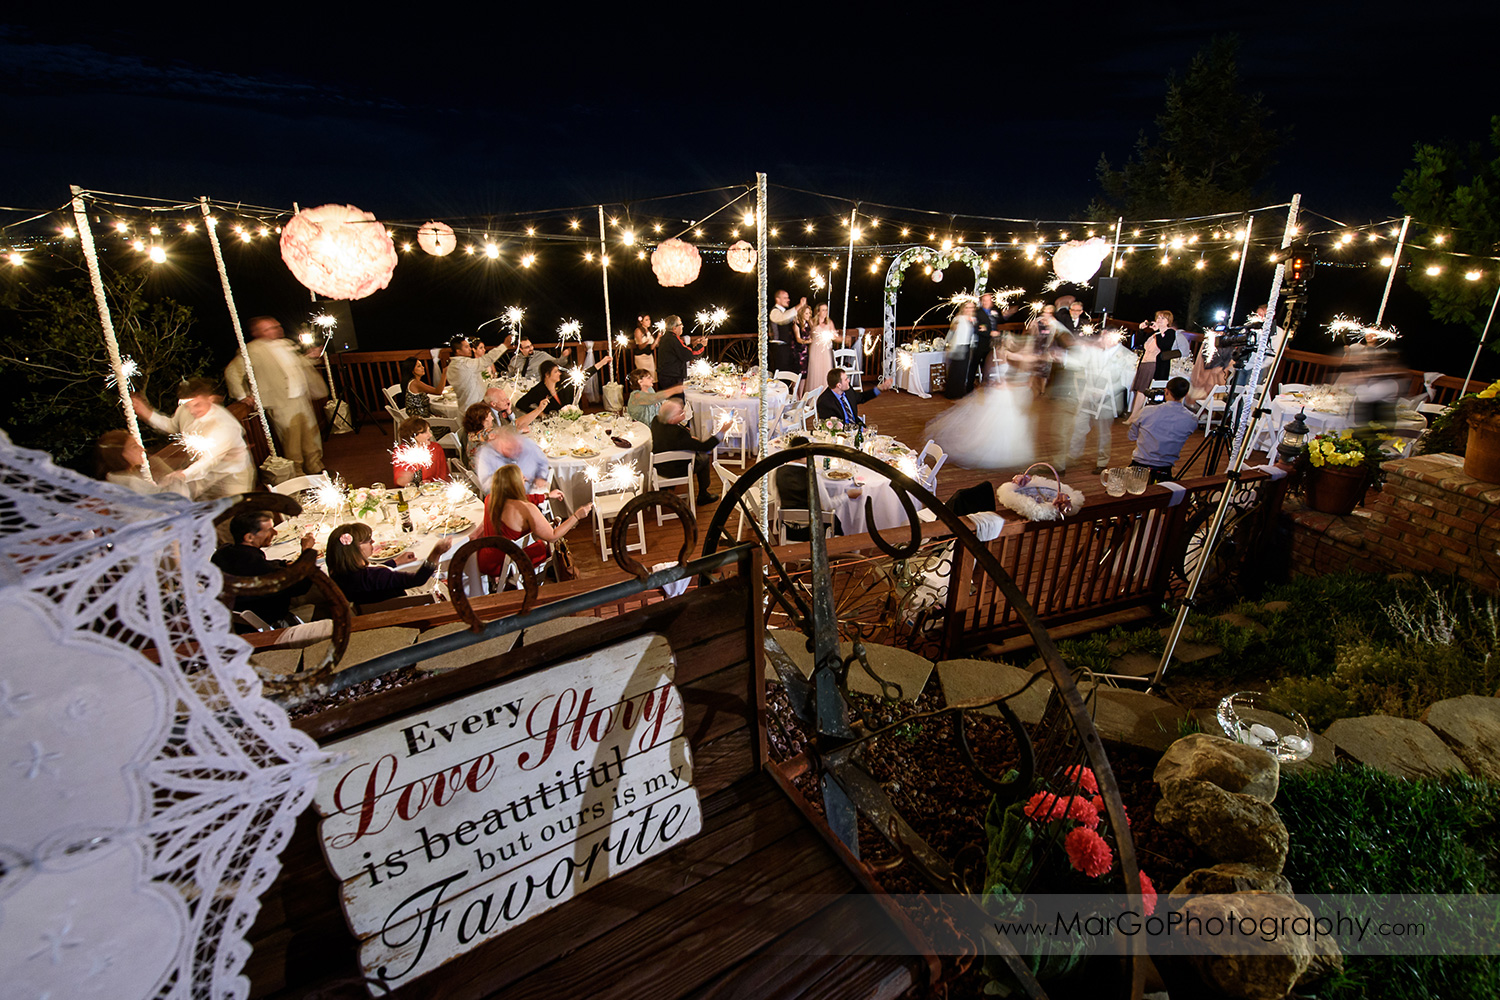 wide view of backyard wedding reception with bride and groom dancing and guests holding sparklers